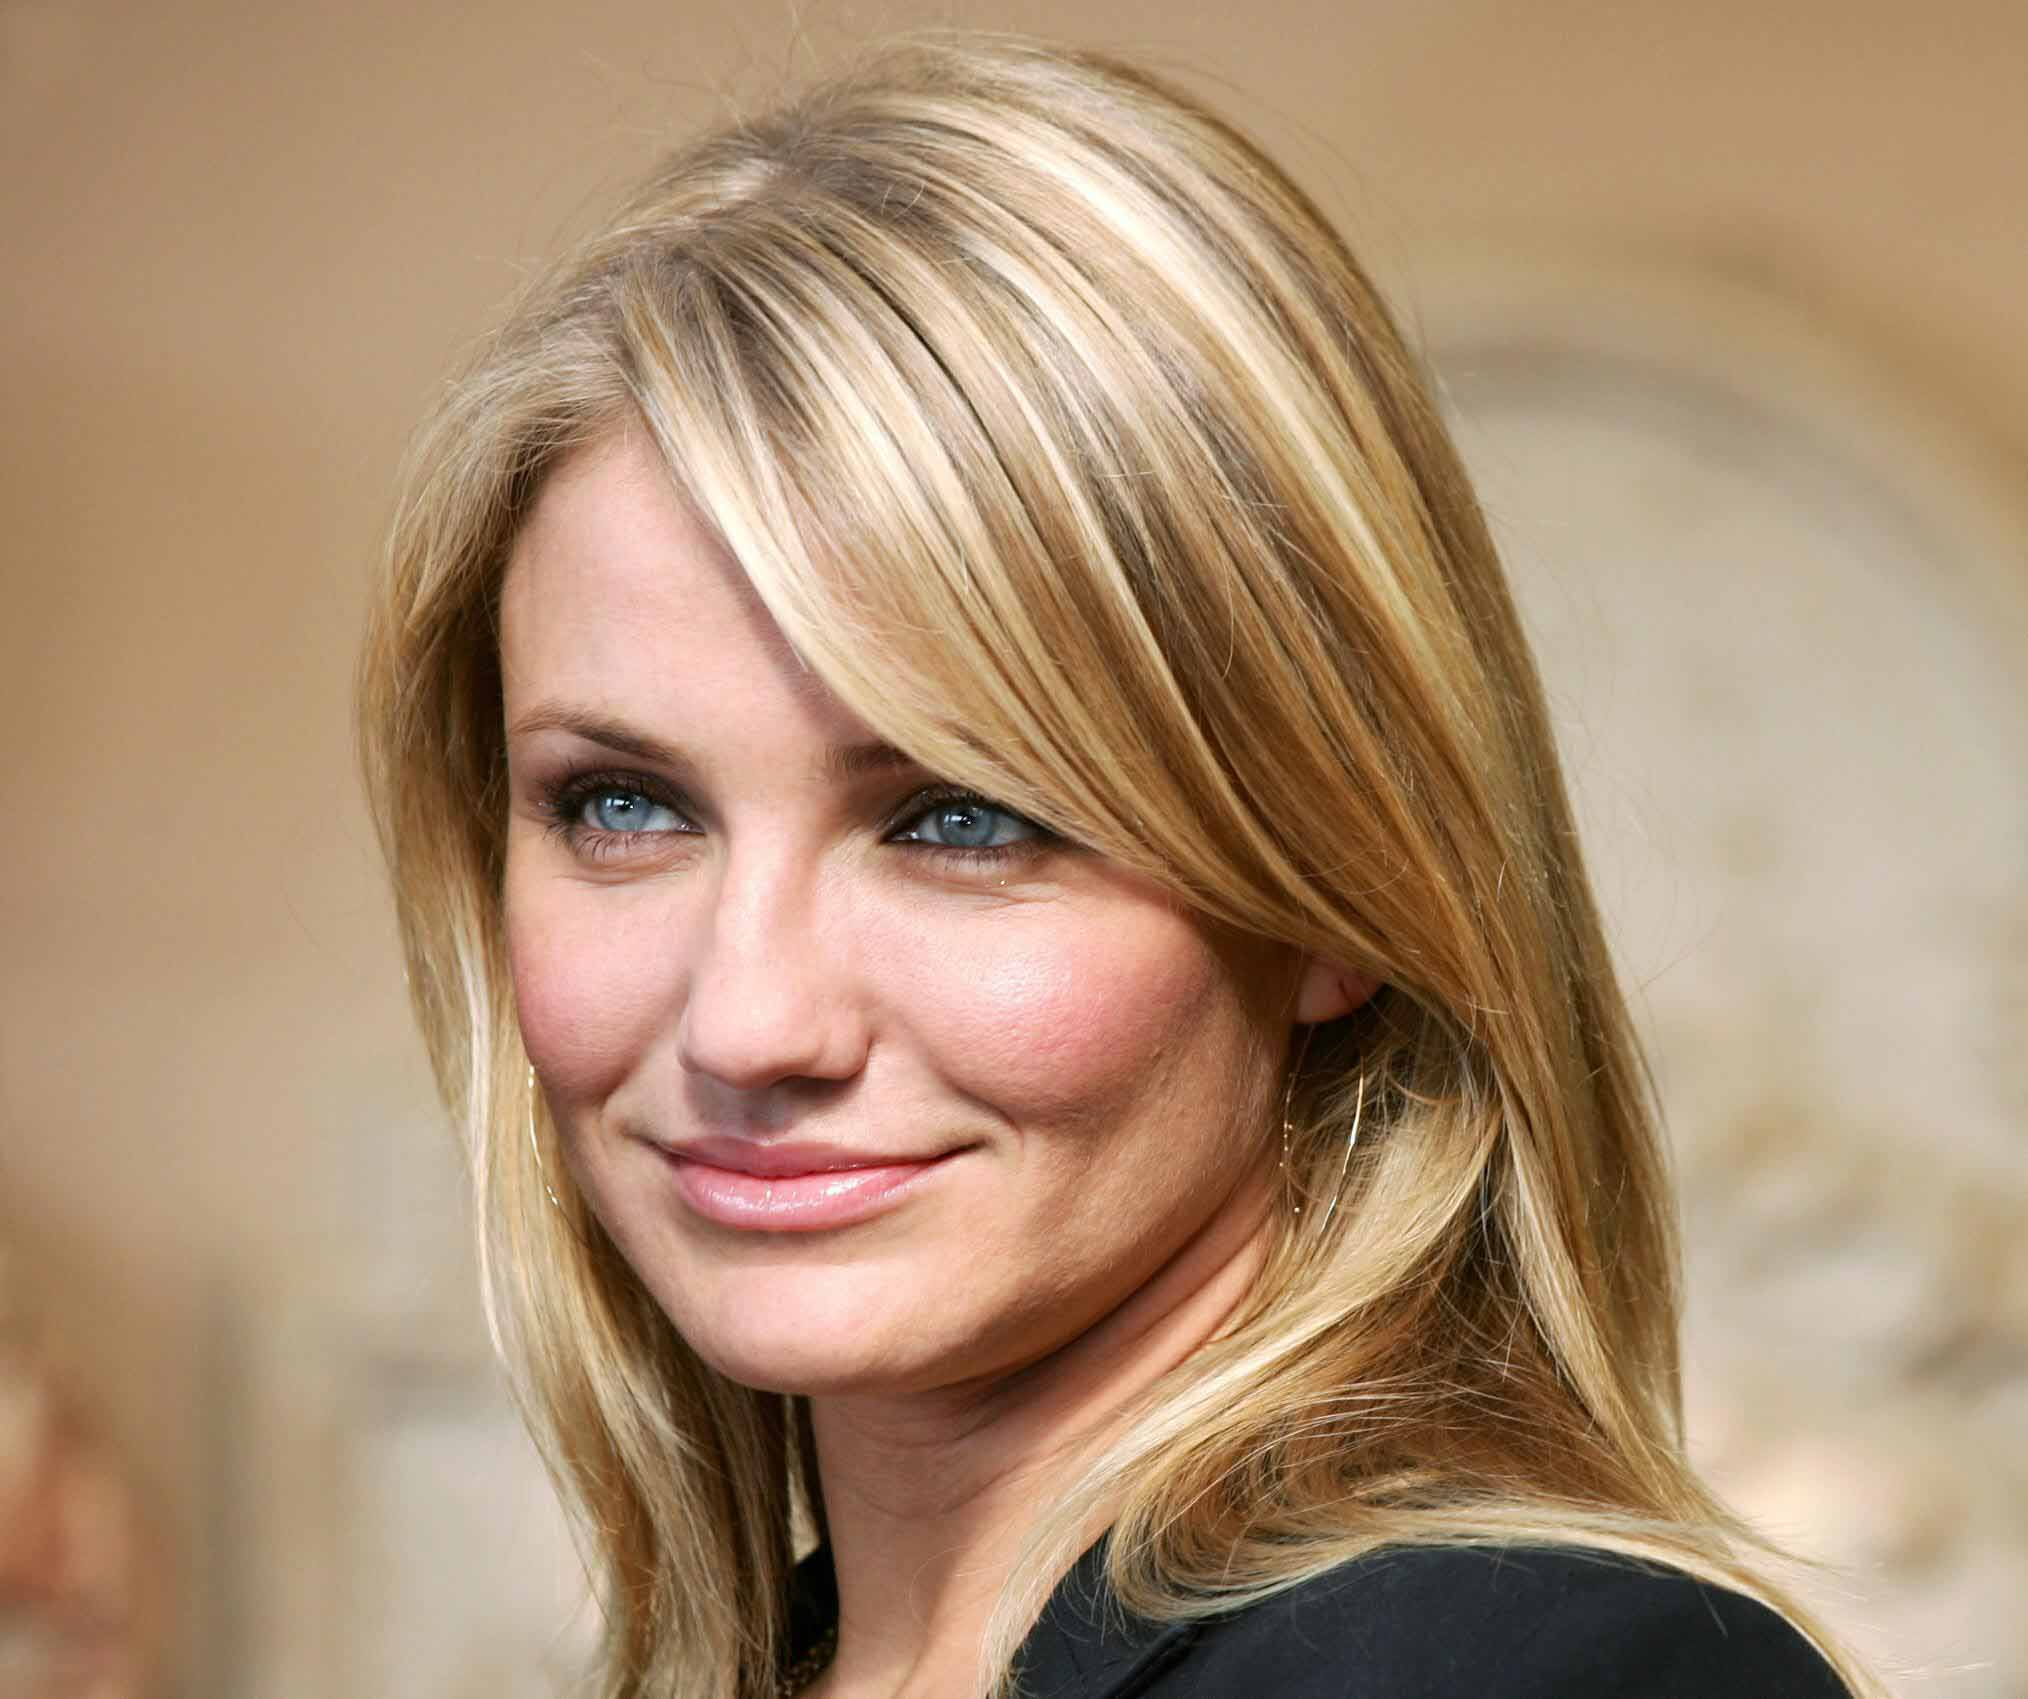 Cameron Diaz Wallpapers High Quality | Download Free